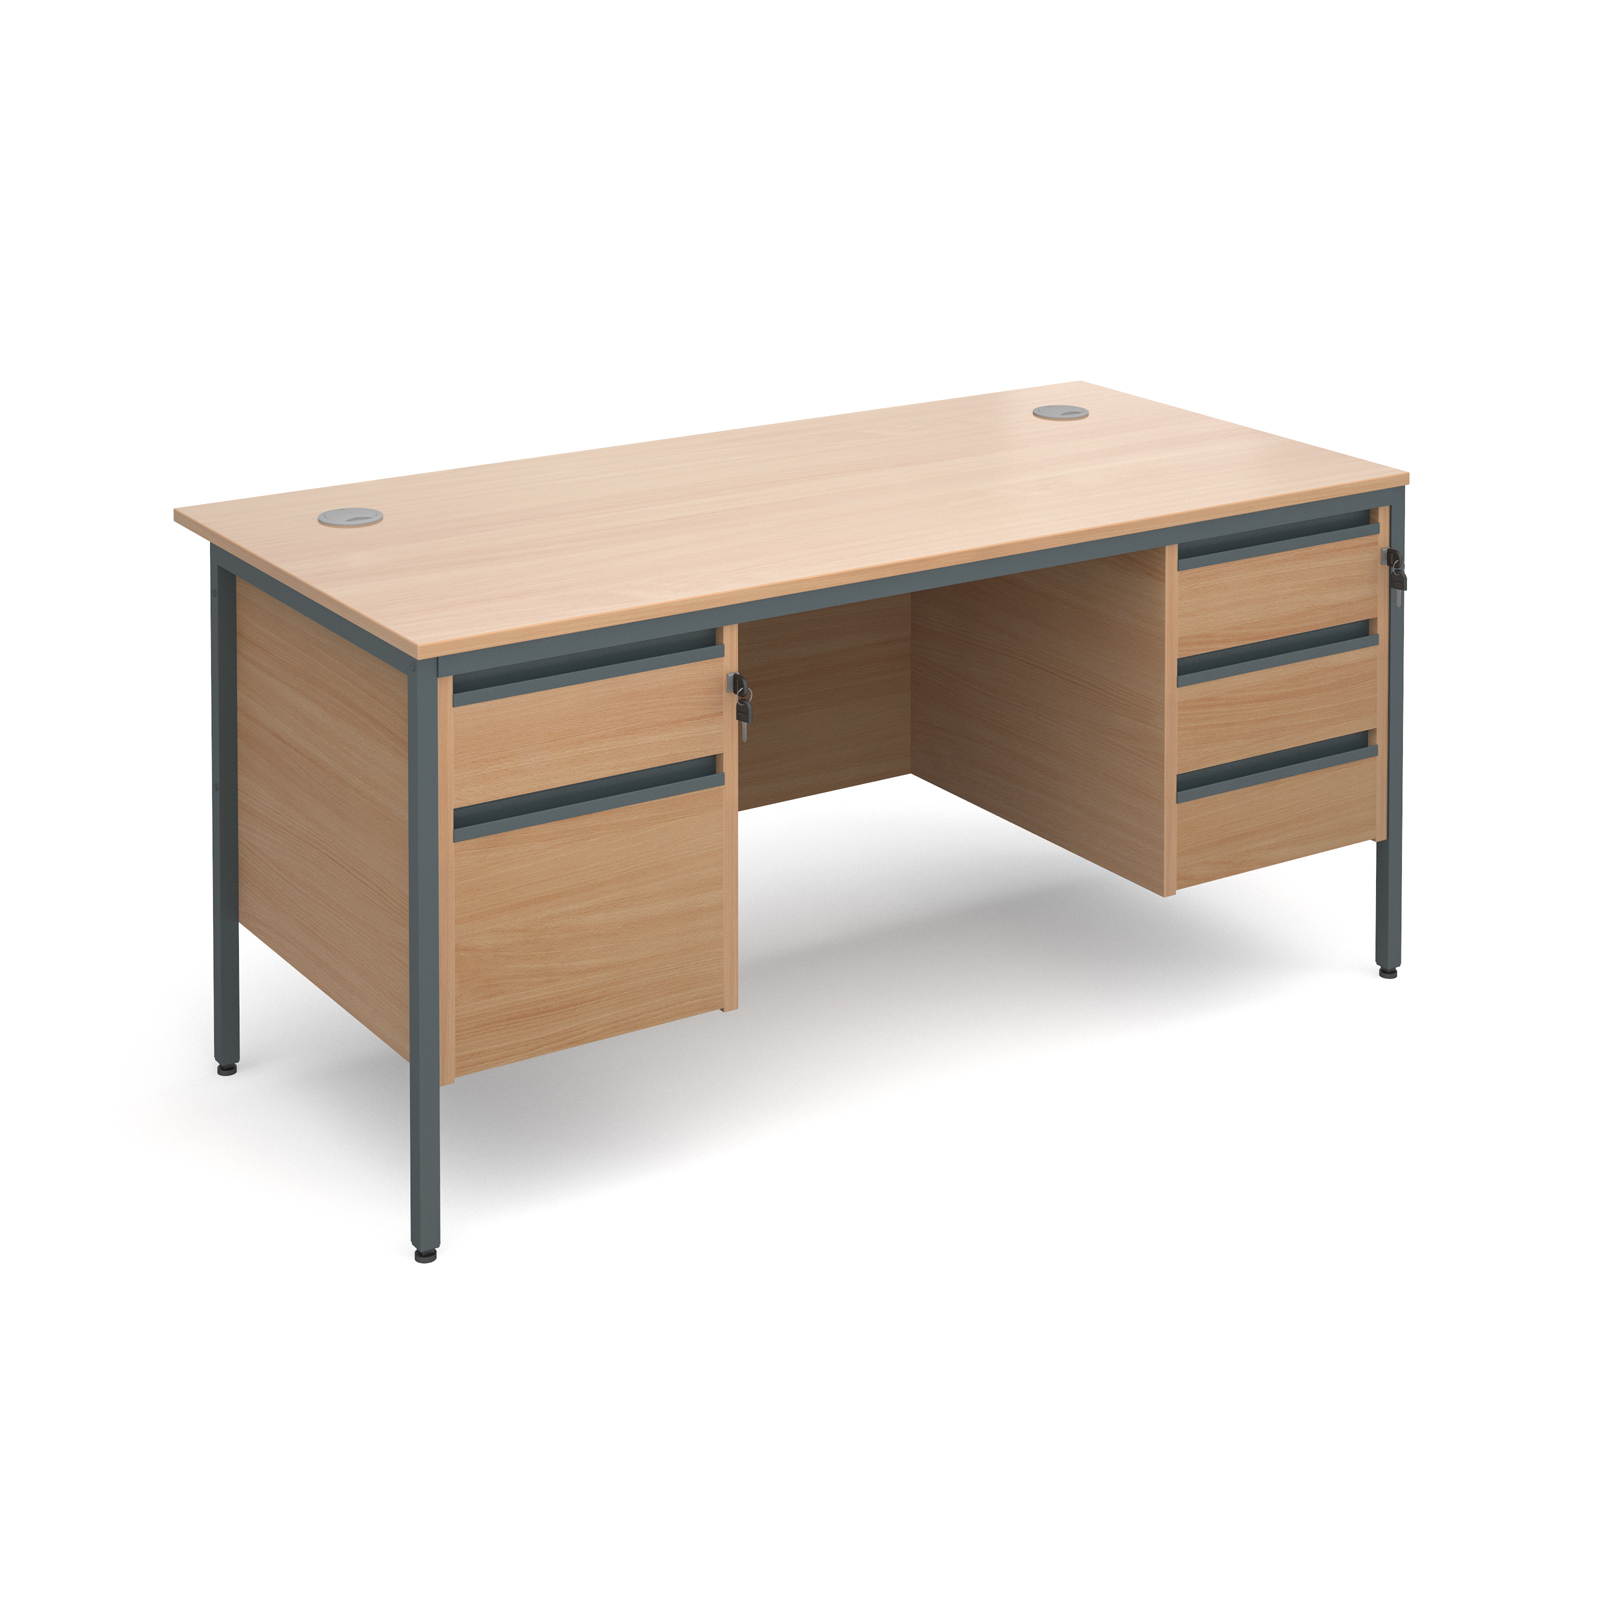 Maestro H frame straight desk with 2 and 3 drawer pedestals 1532mm - beech